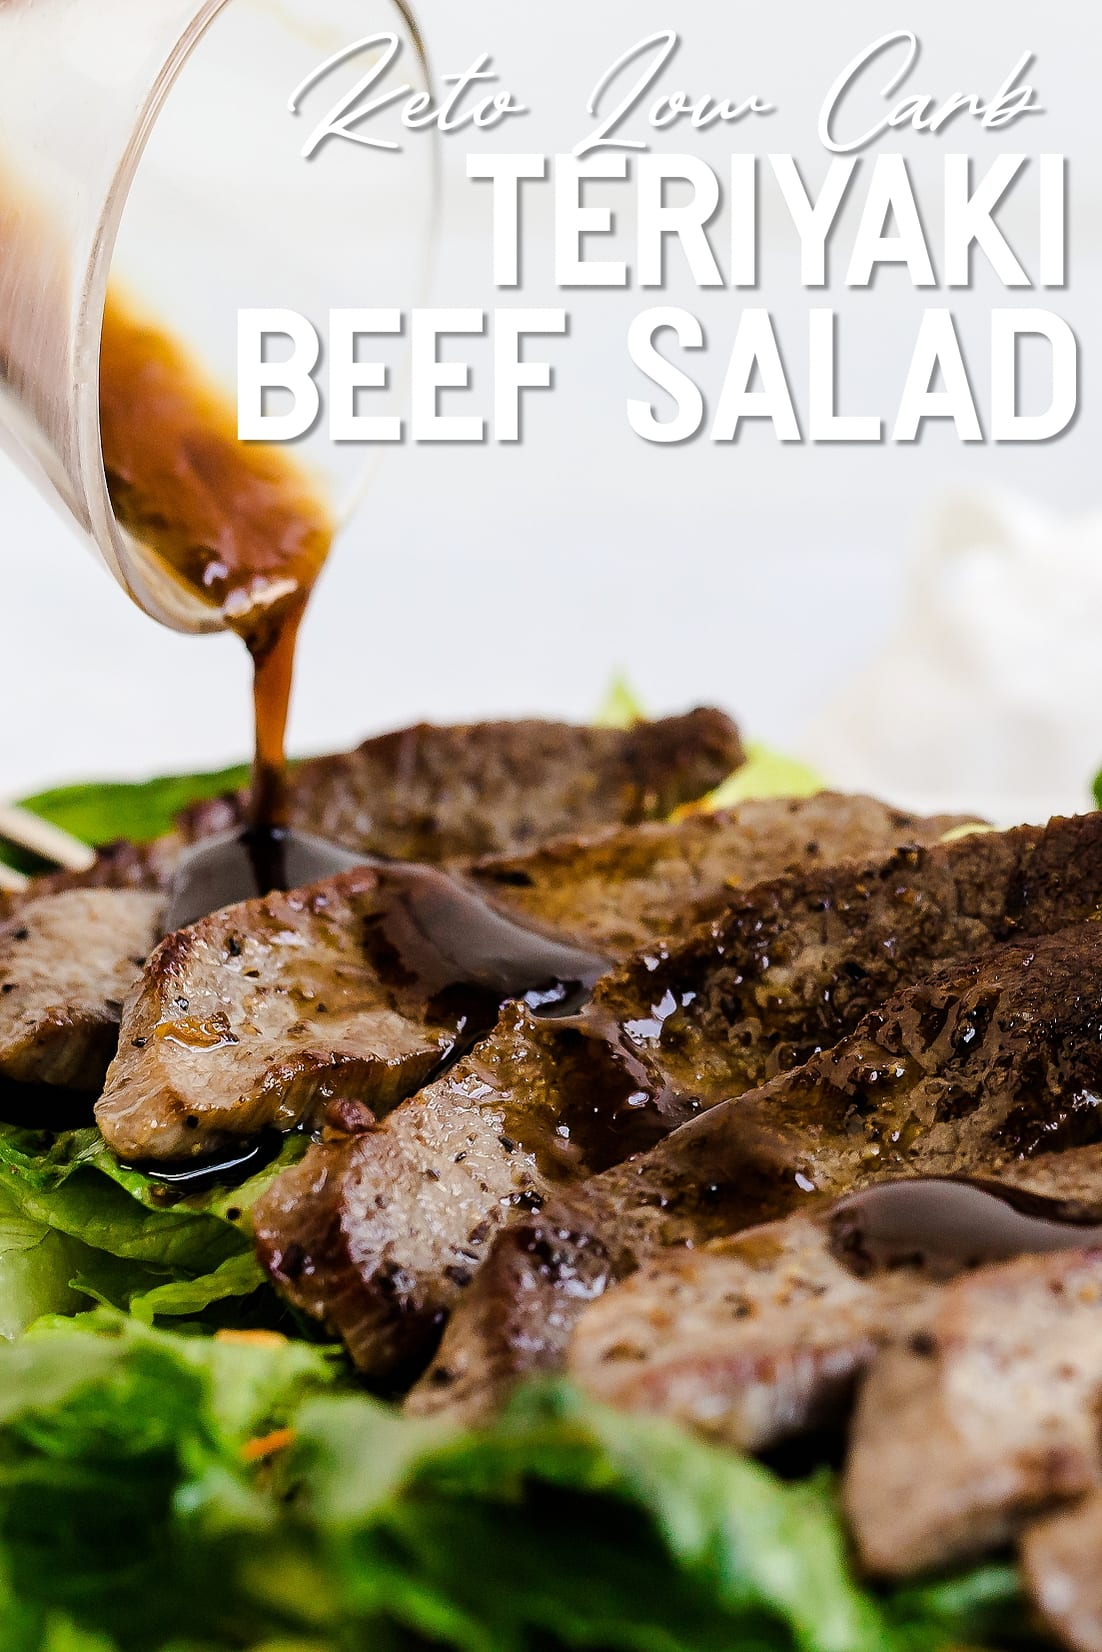 Teriyaki Beef Salad with sauce being poured